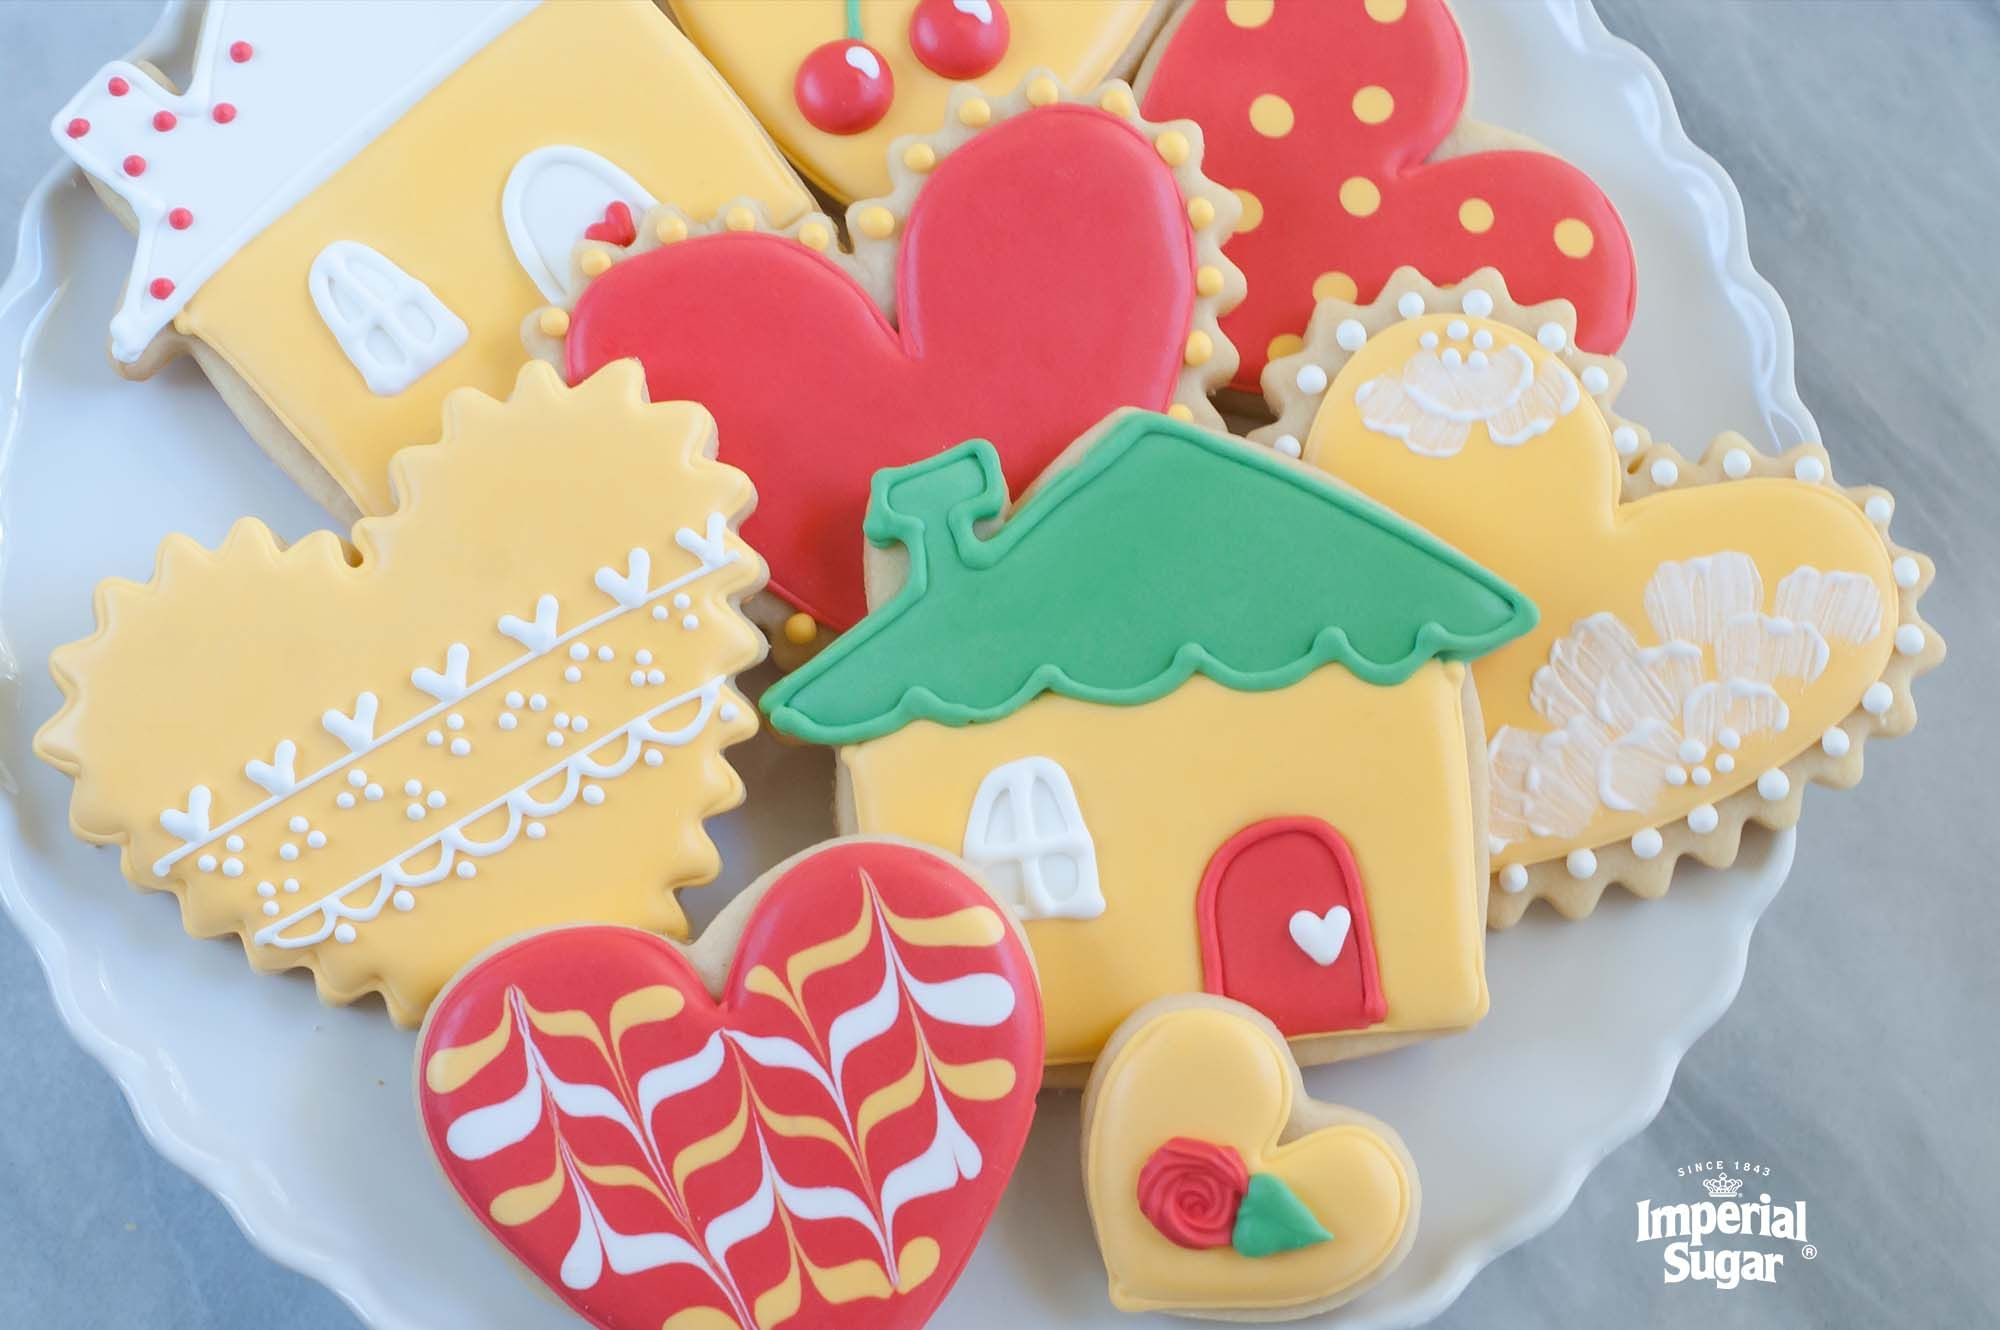 Royal Icing is a favorite of professionals who use it not only for frosting cakes and